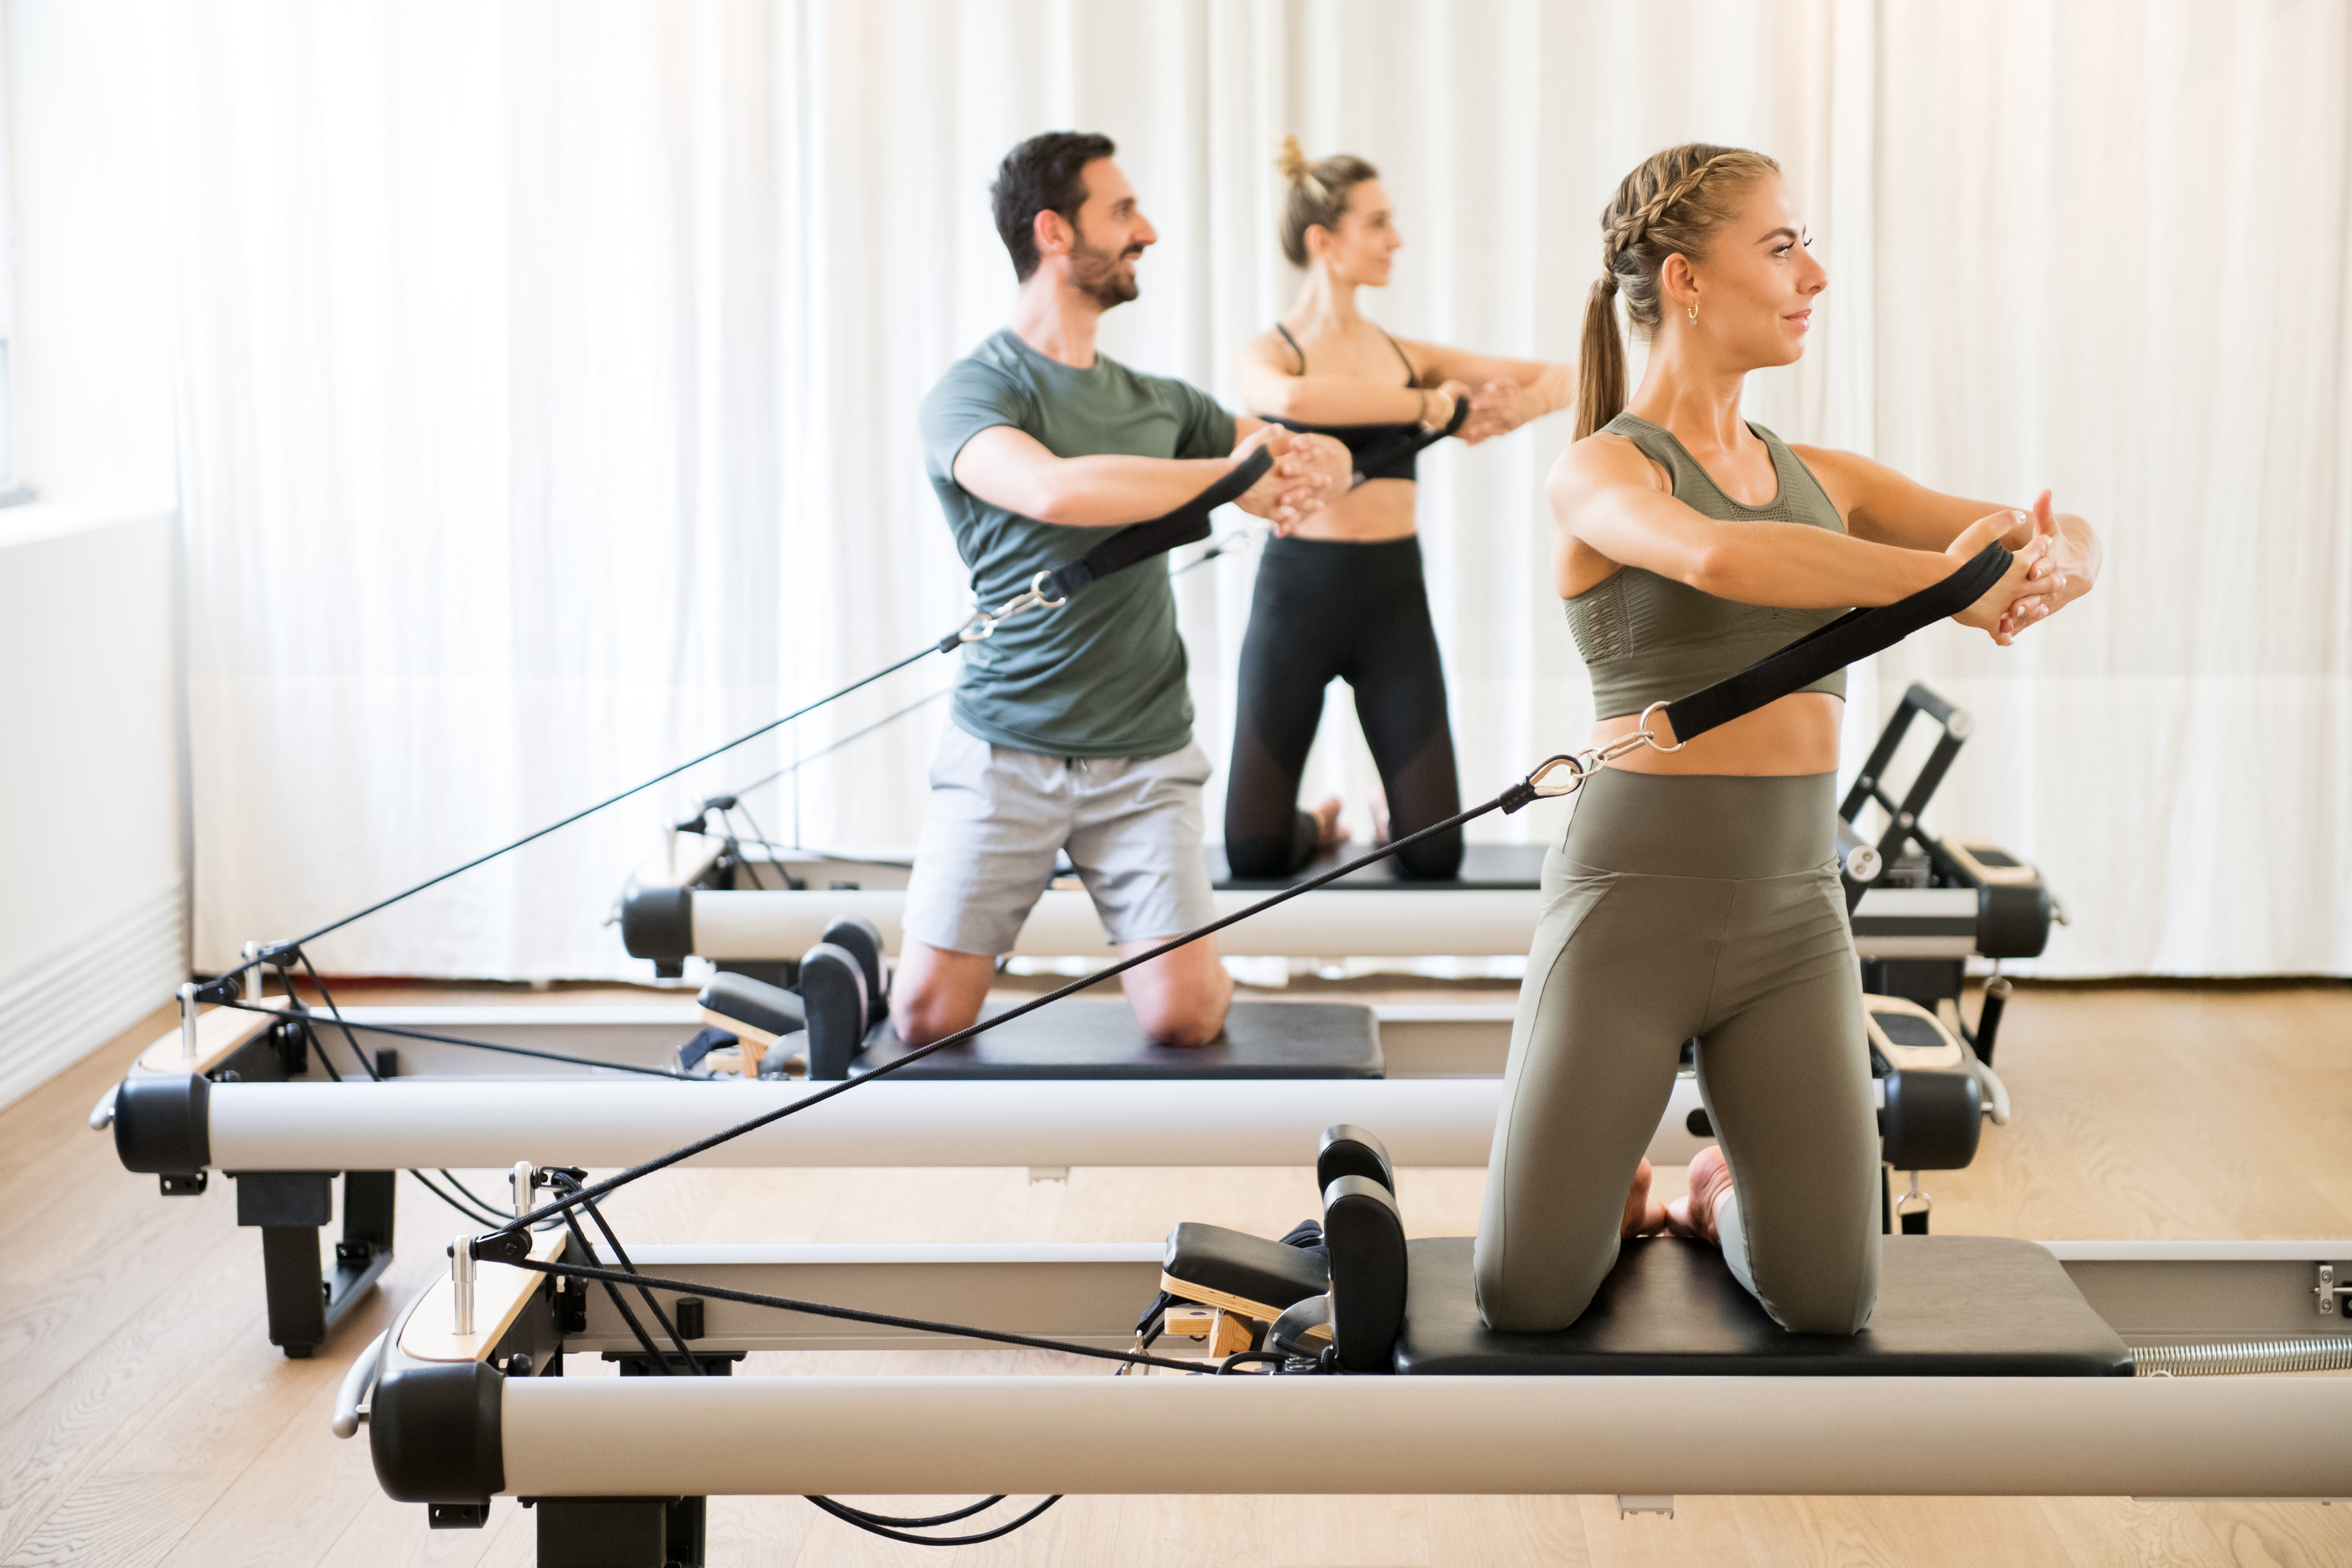 How effective is Pilates for weight loss?